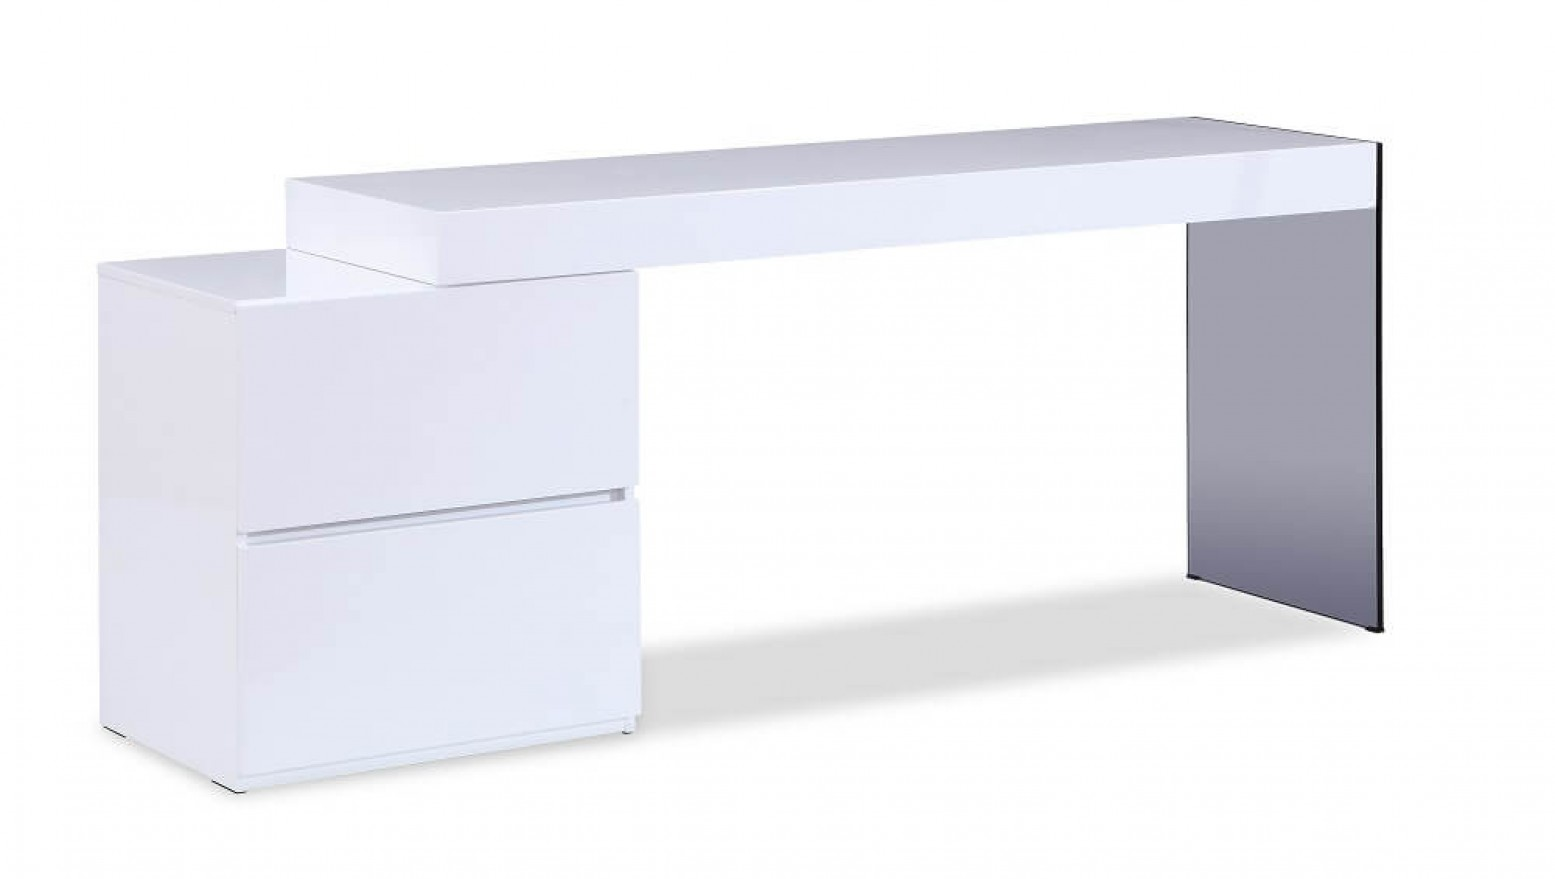 Mia Modern Glass Office Desk with Storage Drawers